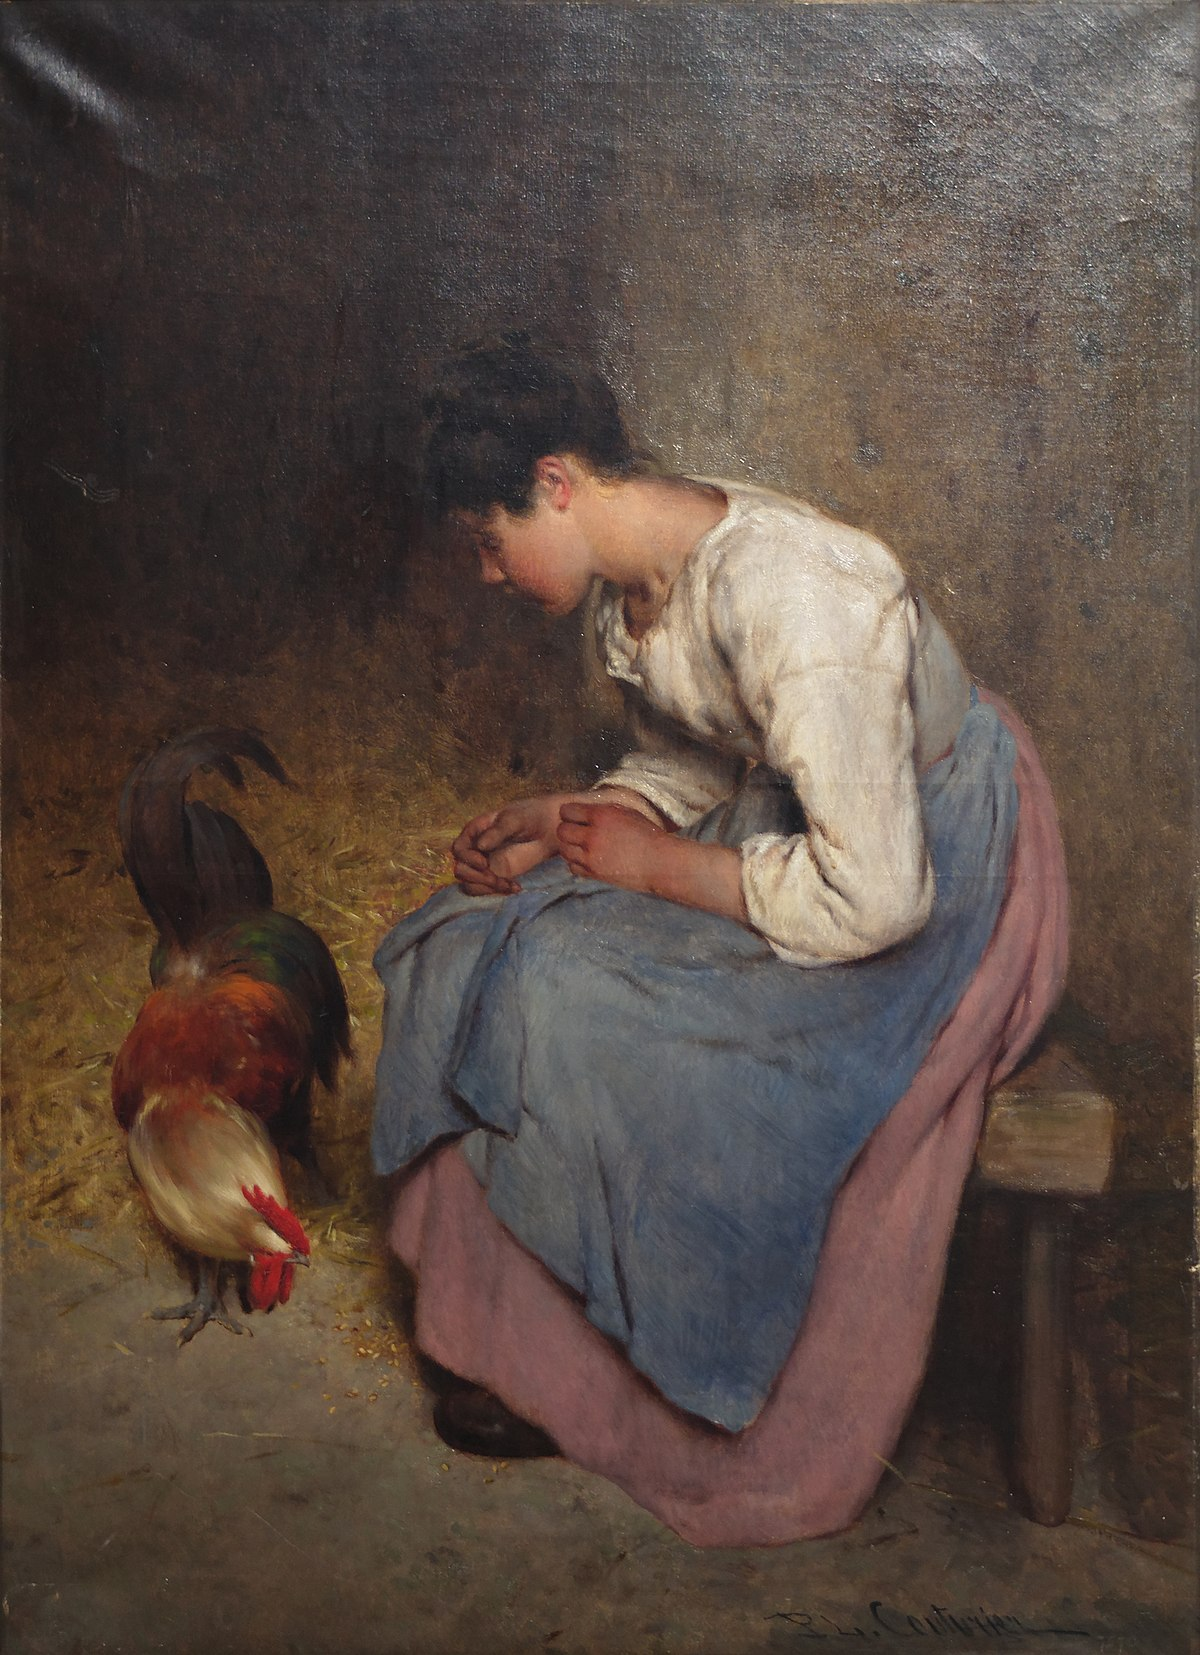 Philibert l on couturier wikip dia for Artiste peintre poitiers